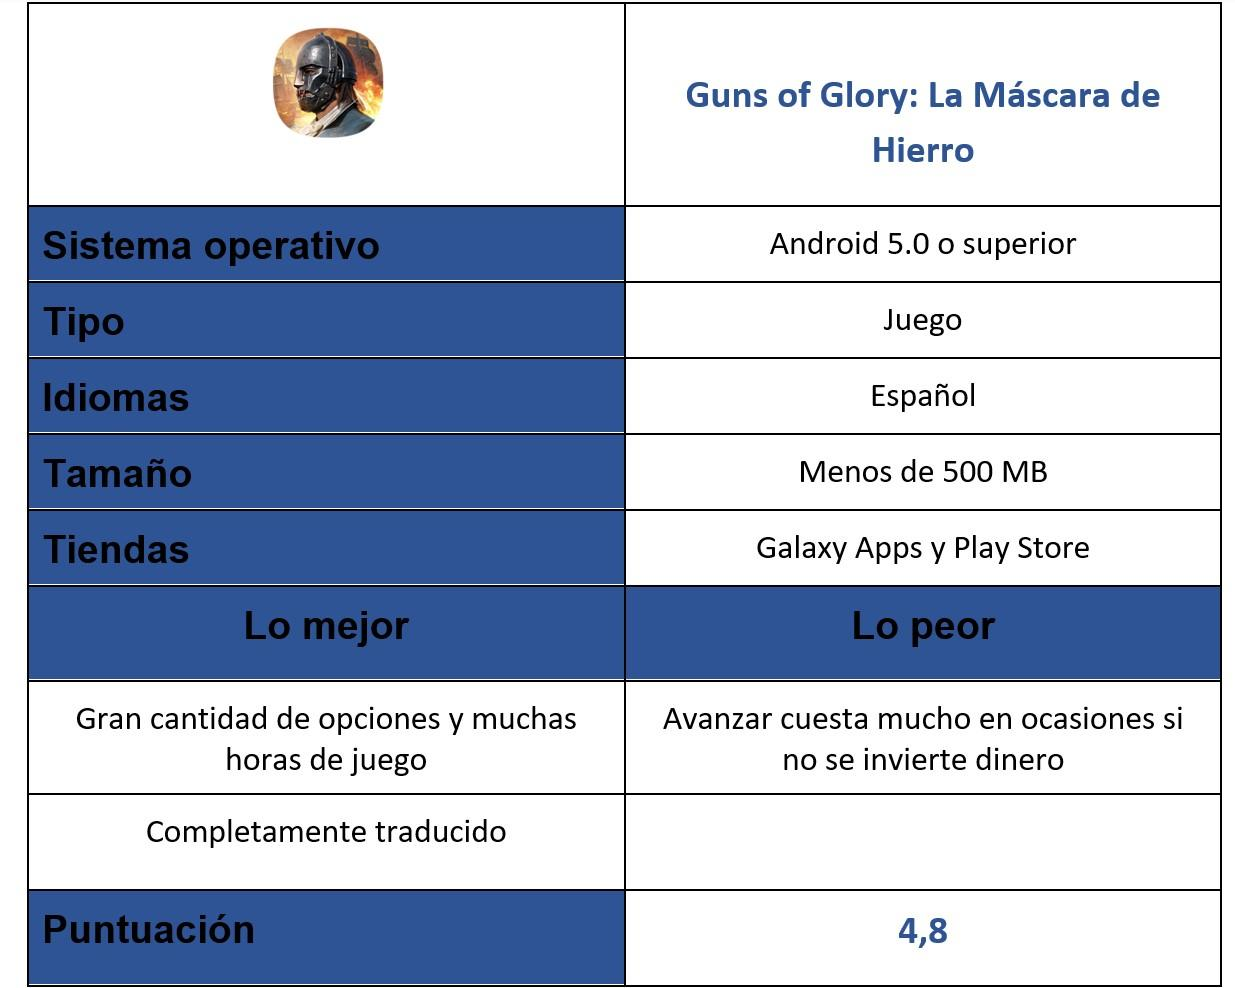 Tabla del juego Guns of Glory: La Máscara de Hierro